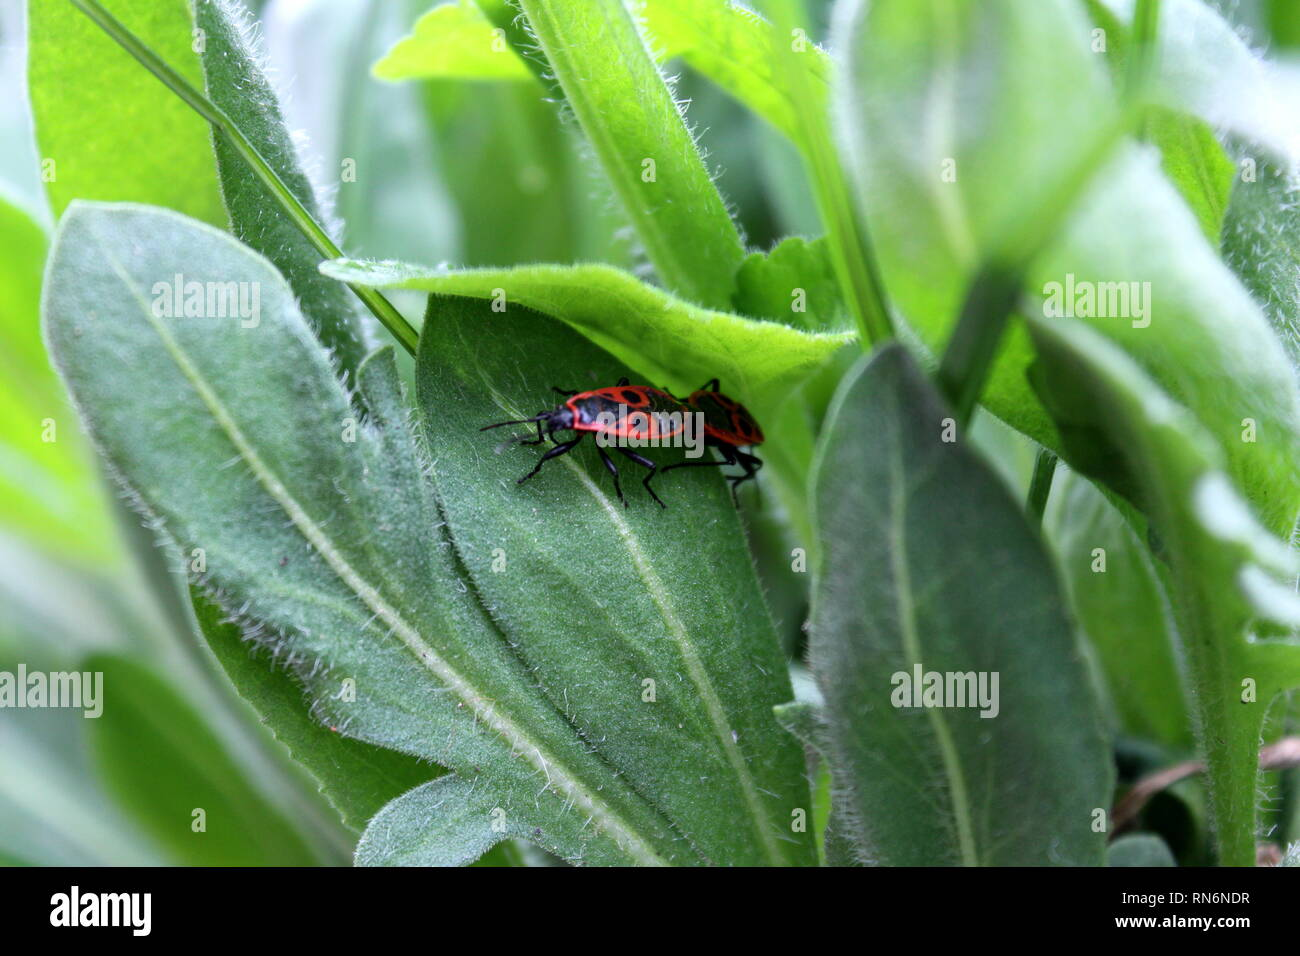 Two small red bugs with black spots on top of hairy thick dark green leaves in local garden on warm sunny day - Stock Image